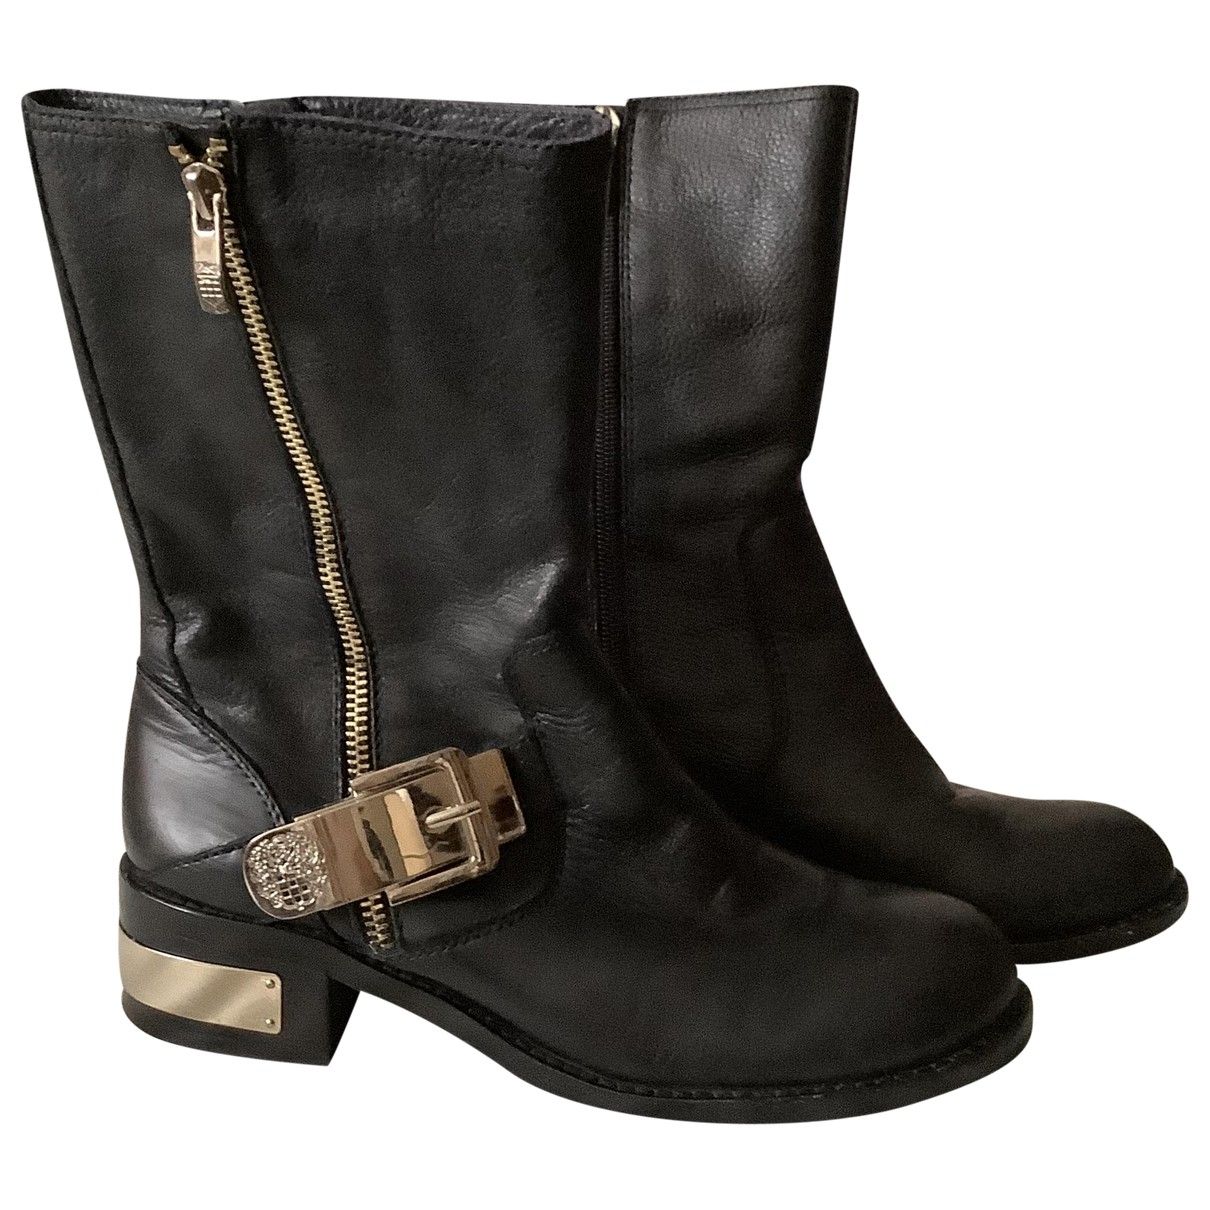 Vince Camuto \N Black Fur Ankle boots for Women 37 EU